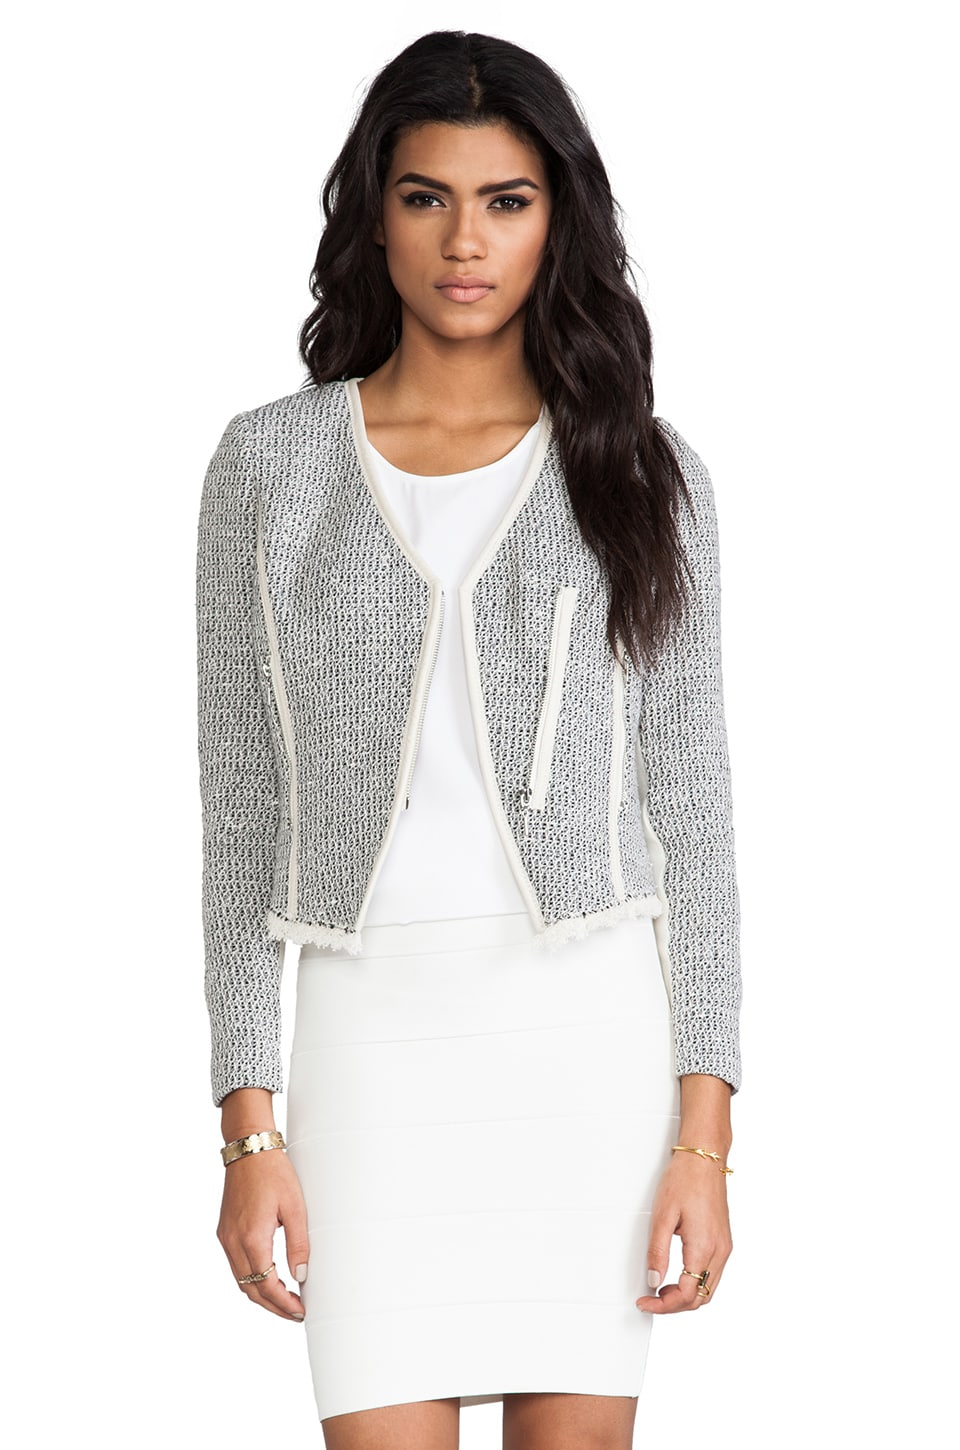 Rebecca Taylor Cutaway Tweed Jacket in Charcoal